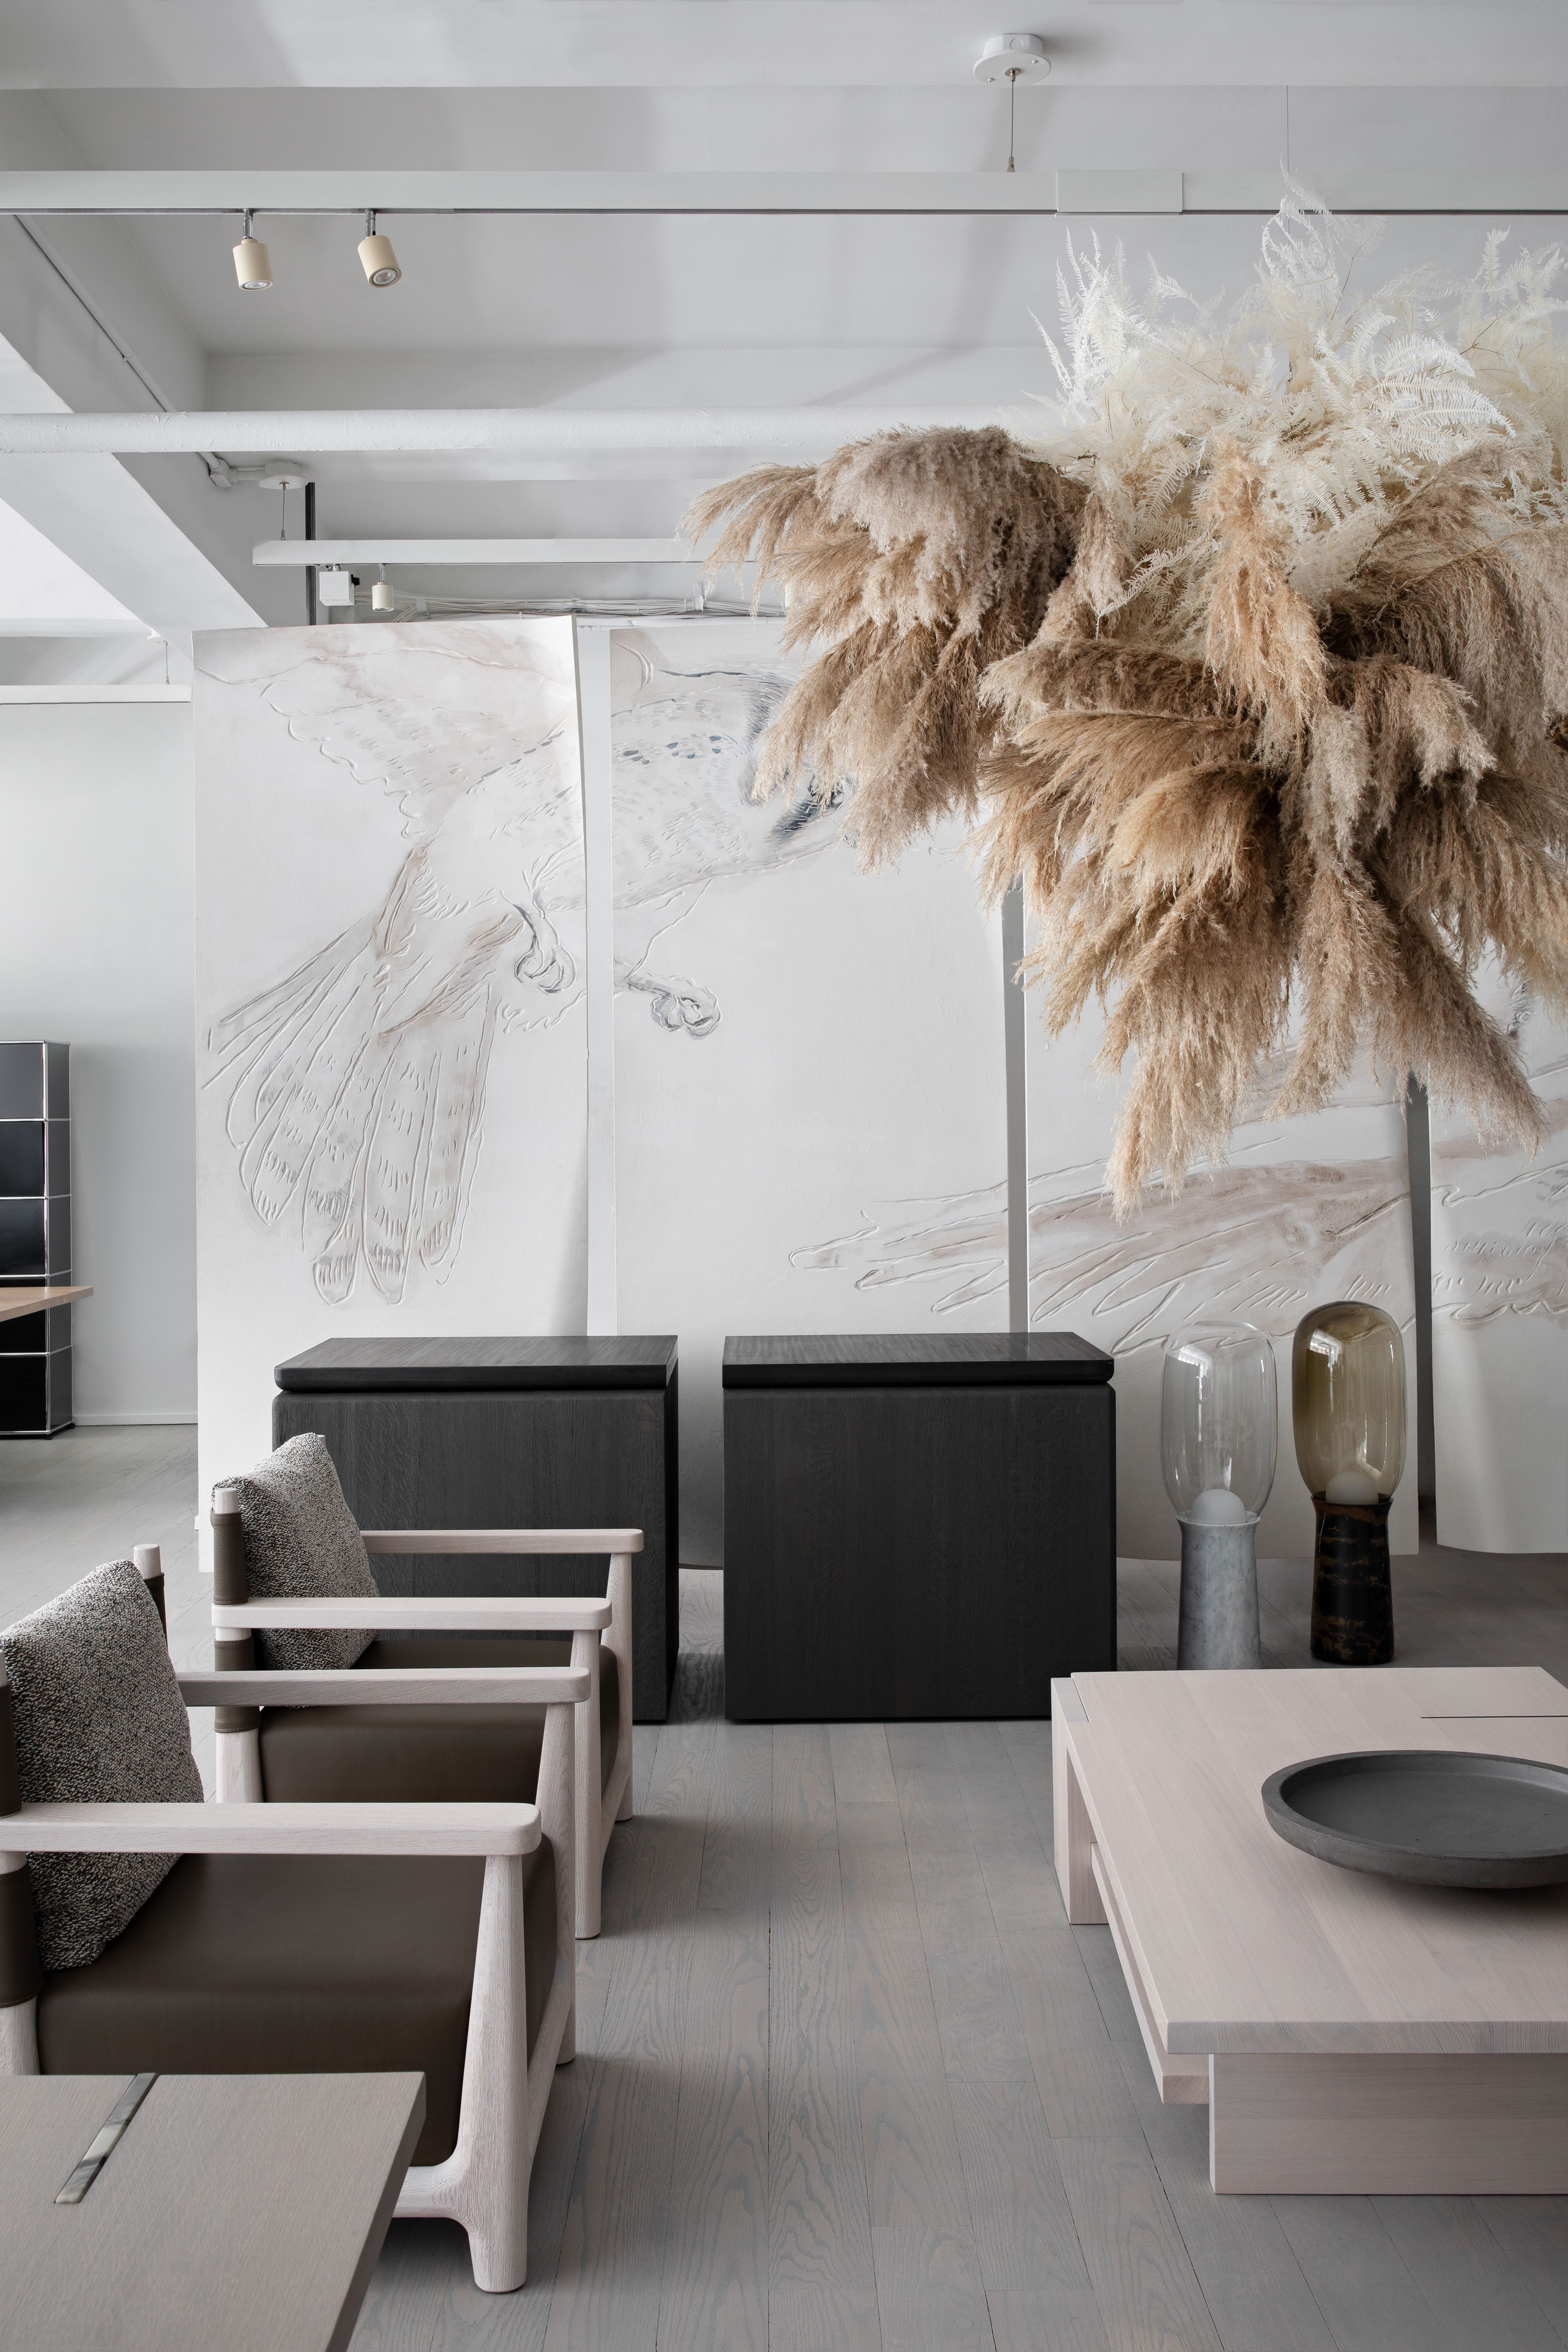 ABI Lounge Chairs designed by Christophe Delcourt KAST 001